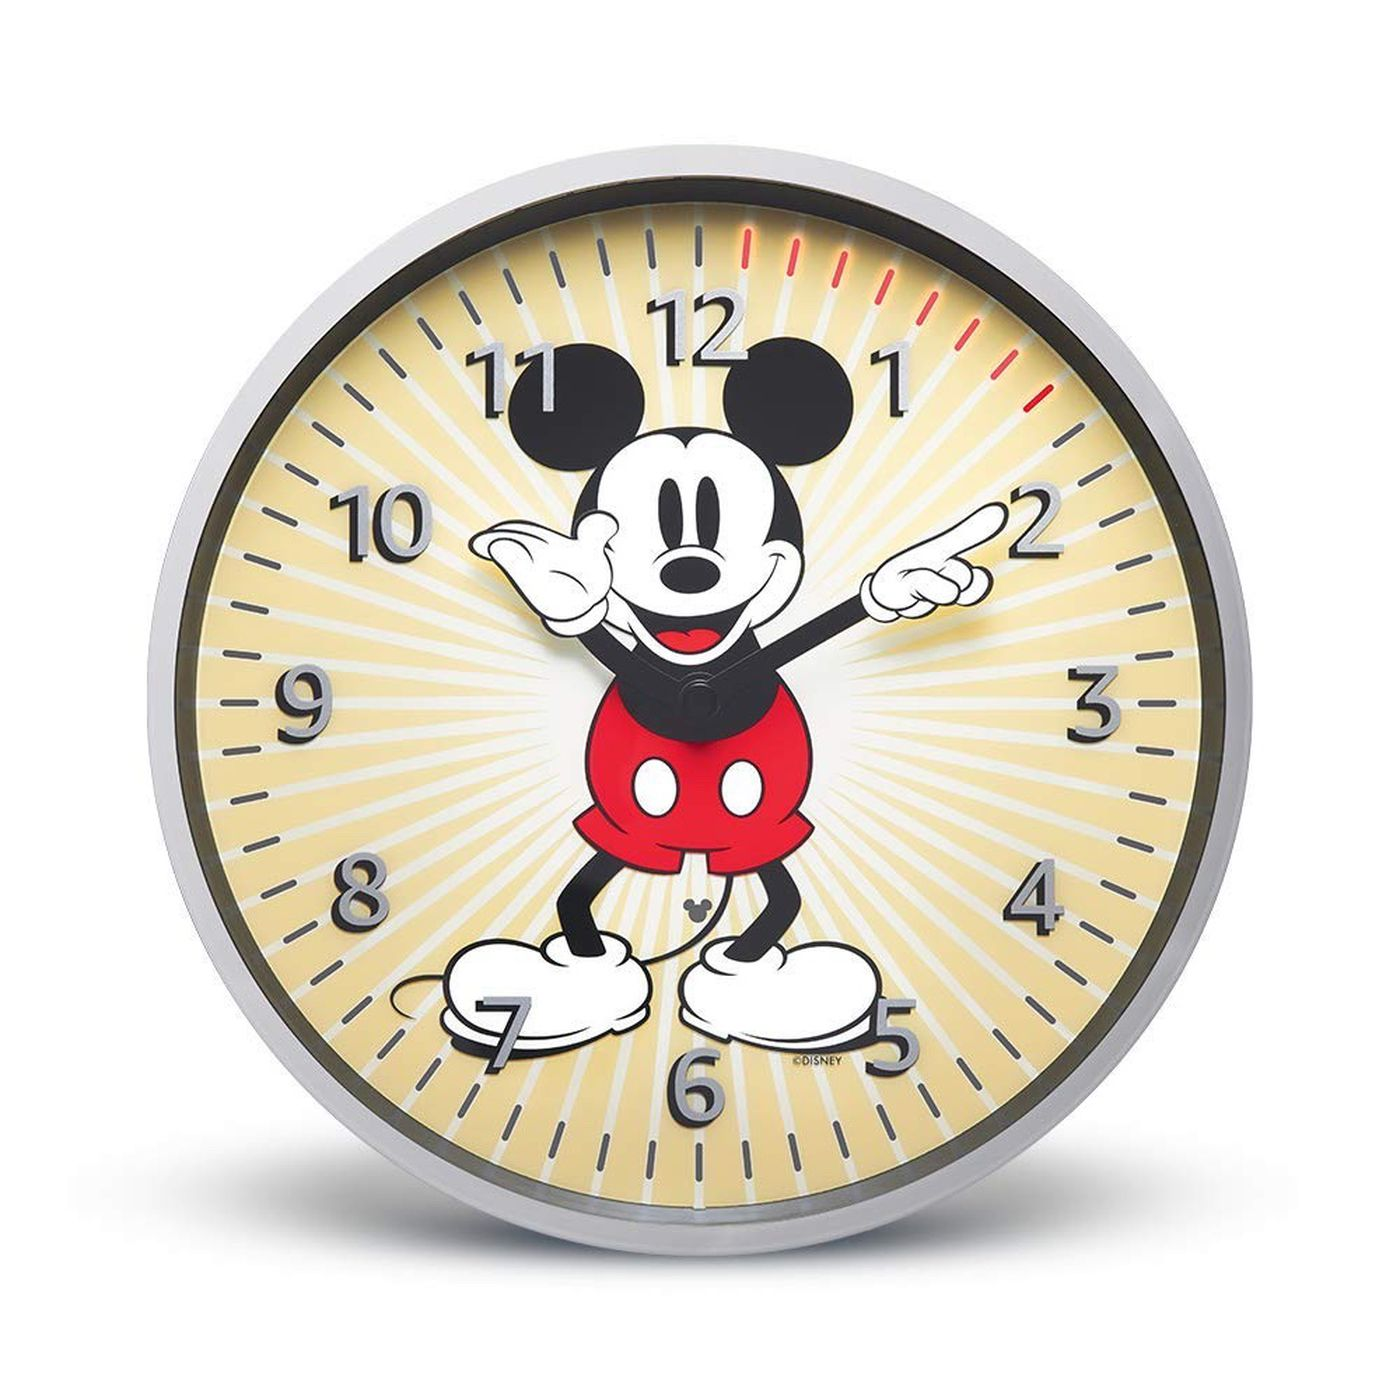 Amazon keeps building its Echo Wall Clock lineup with a Mickey Mouse  edition - The Verge